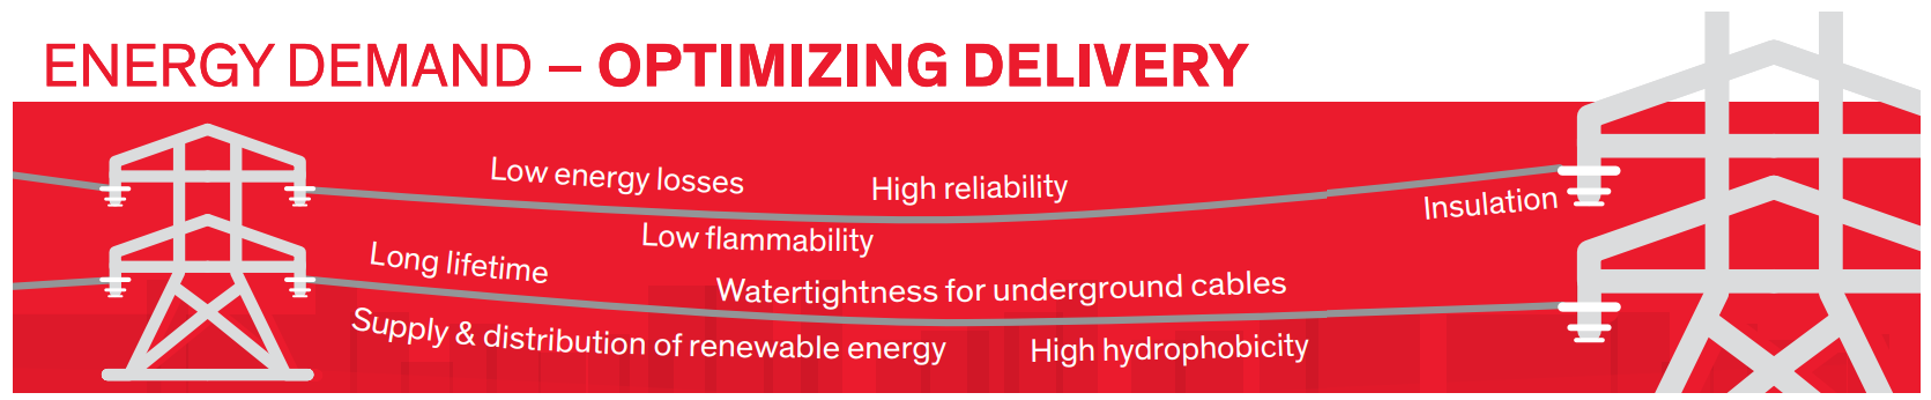 ENERGY DEMAND – OPTIMIZING DELIVERY